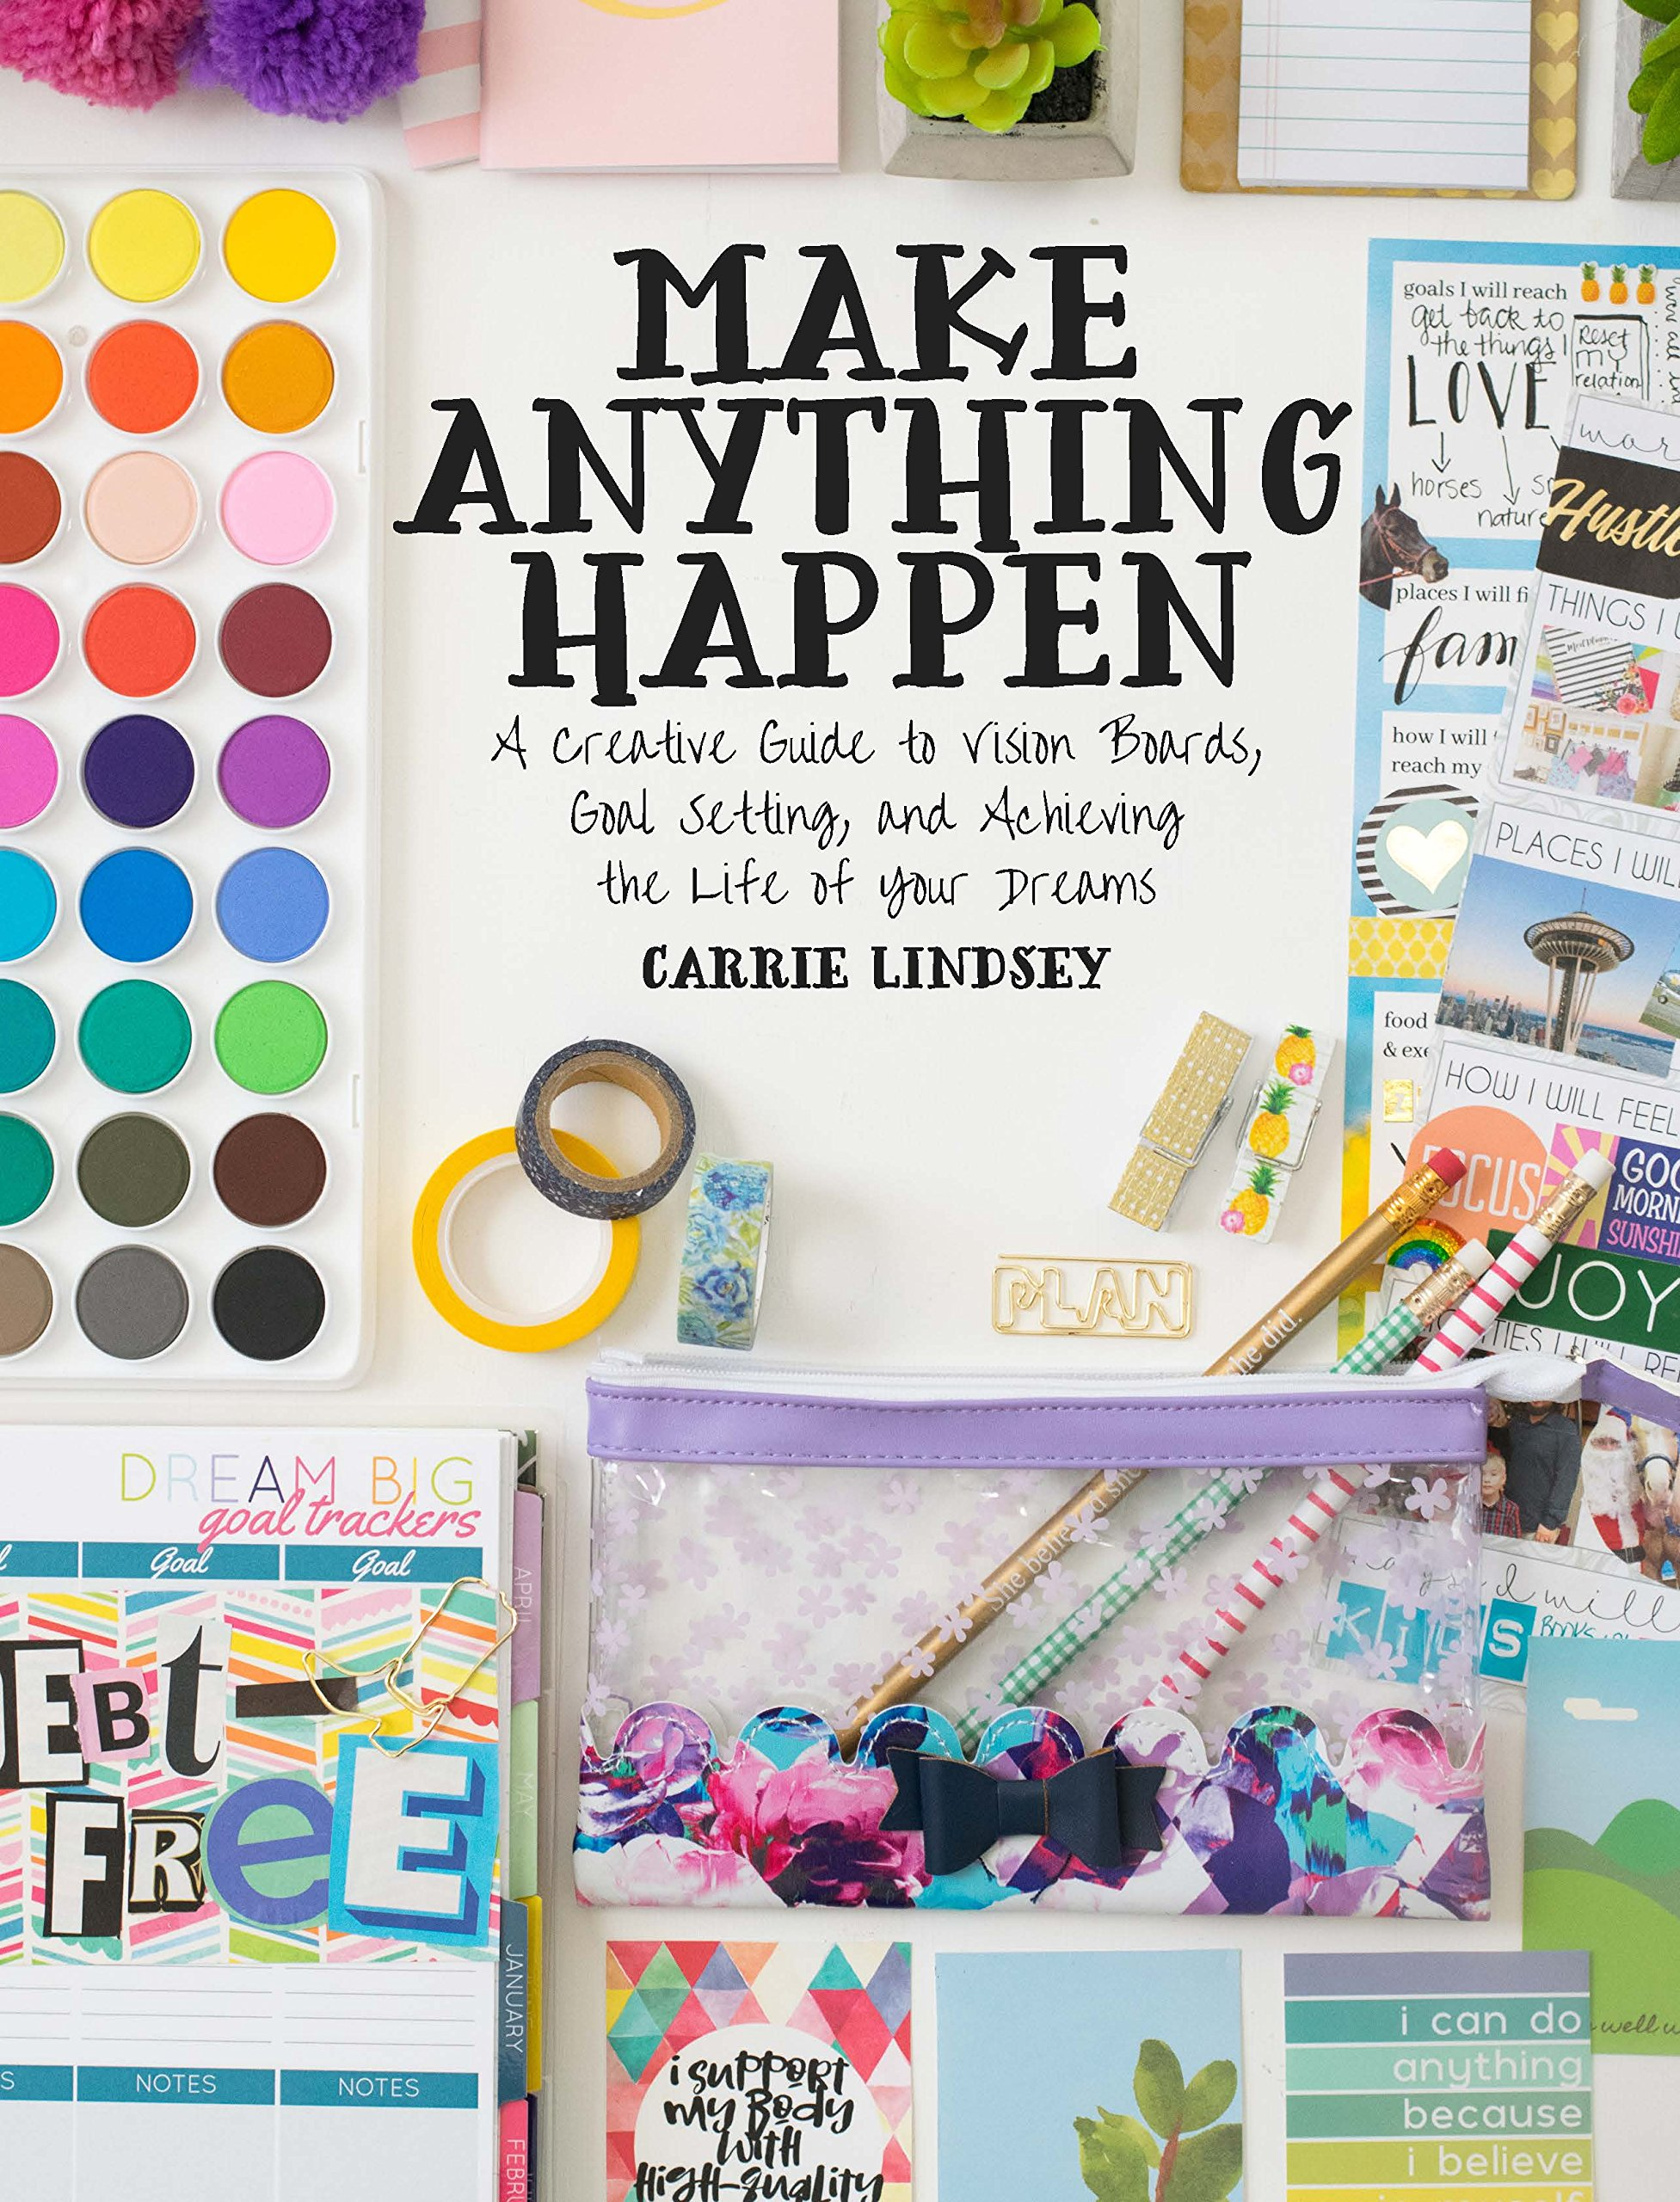 Make Anything Happen: A Creative Guide to Vision Boards, Goal Setting, and Achieving the Life of Your Dreams